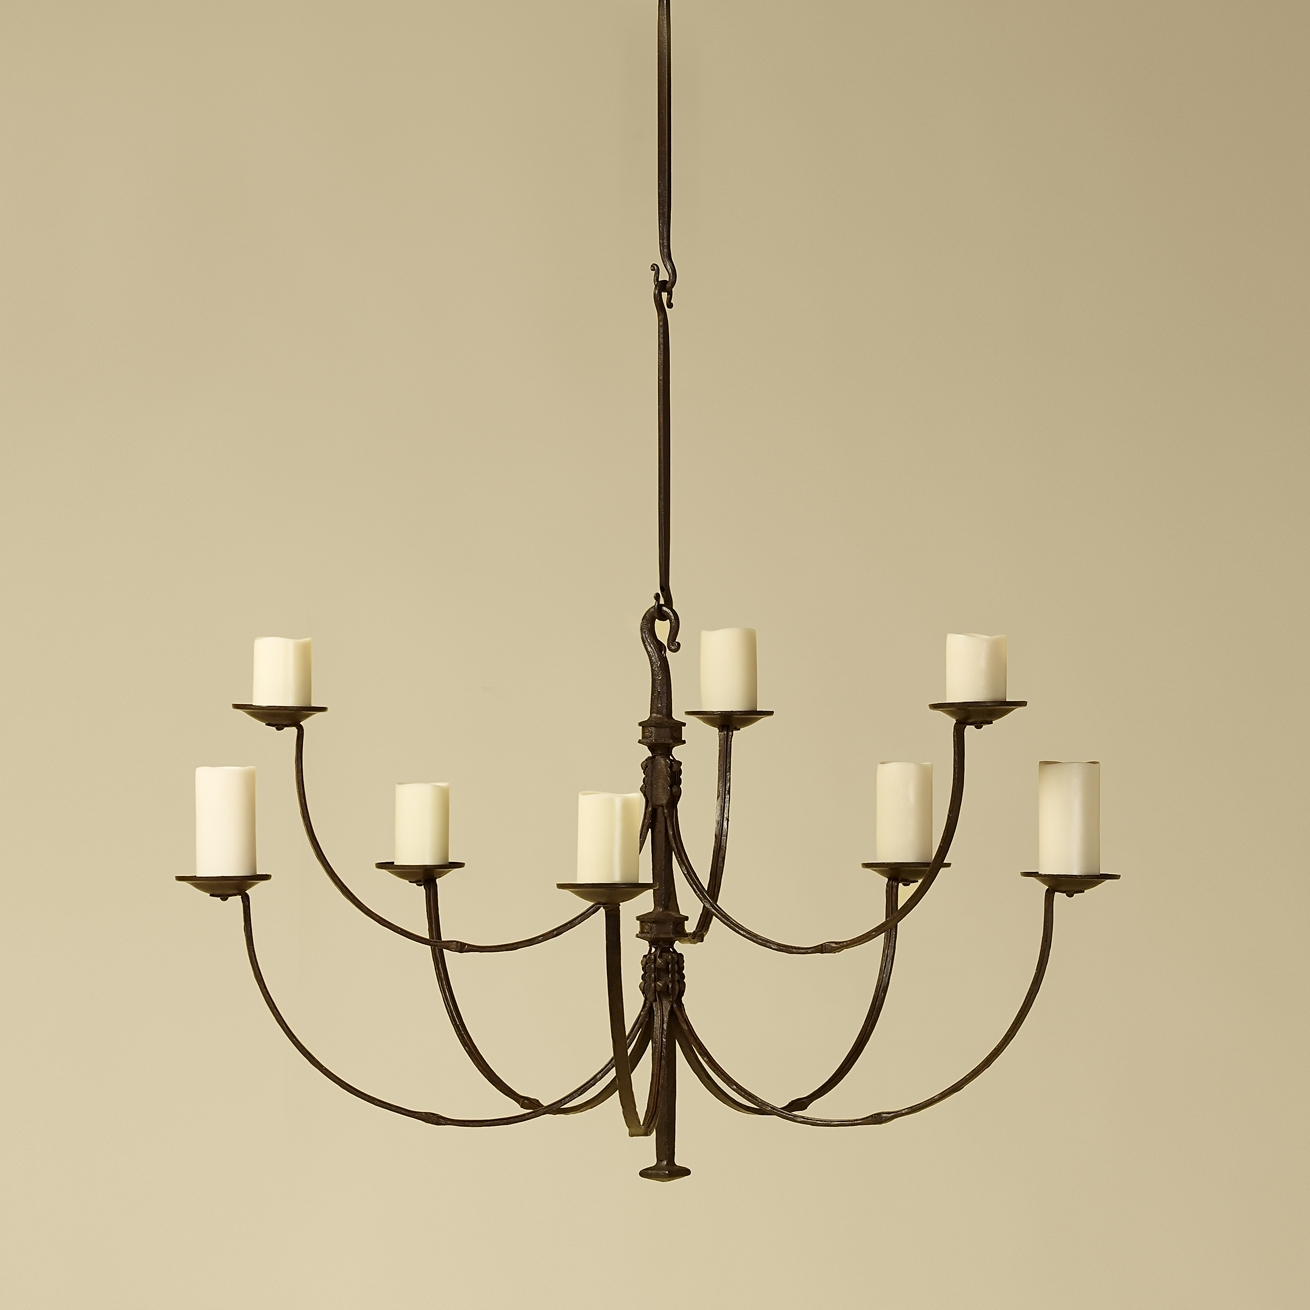 2019 Rose Tarlow Iron Chandelier – Such Graceful Lines On This Chandelier With Regard To Iron Chandelier (View 2 of 20)